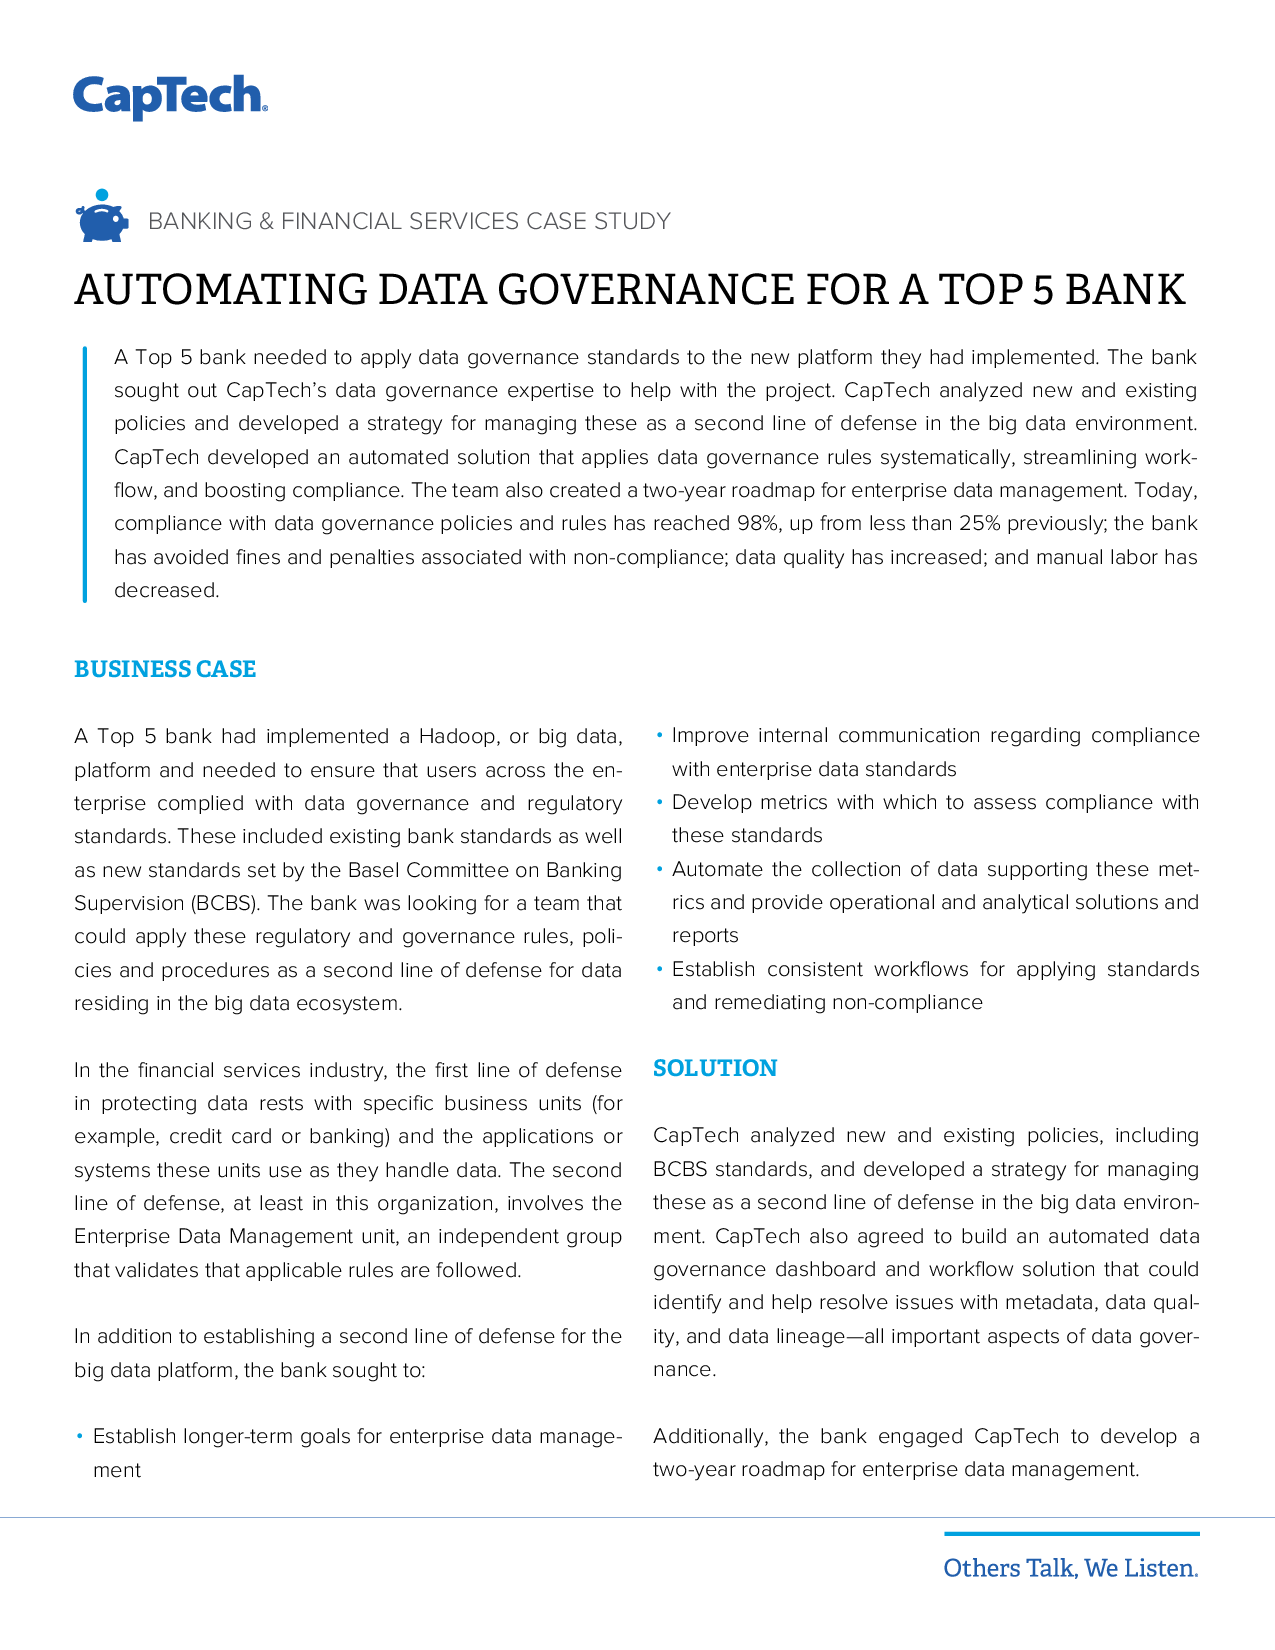 Automating Data Governance For A Top 5 Bank